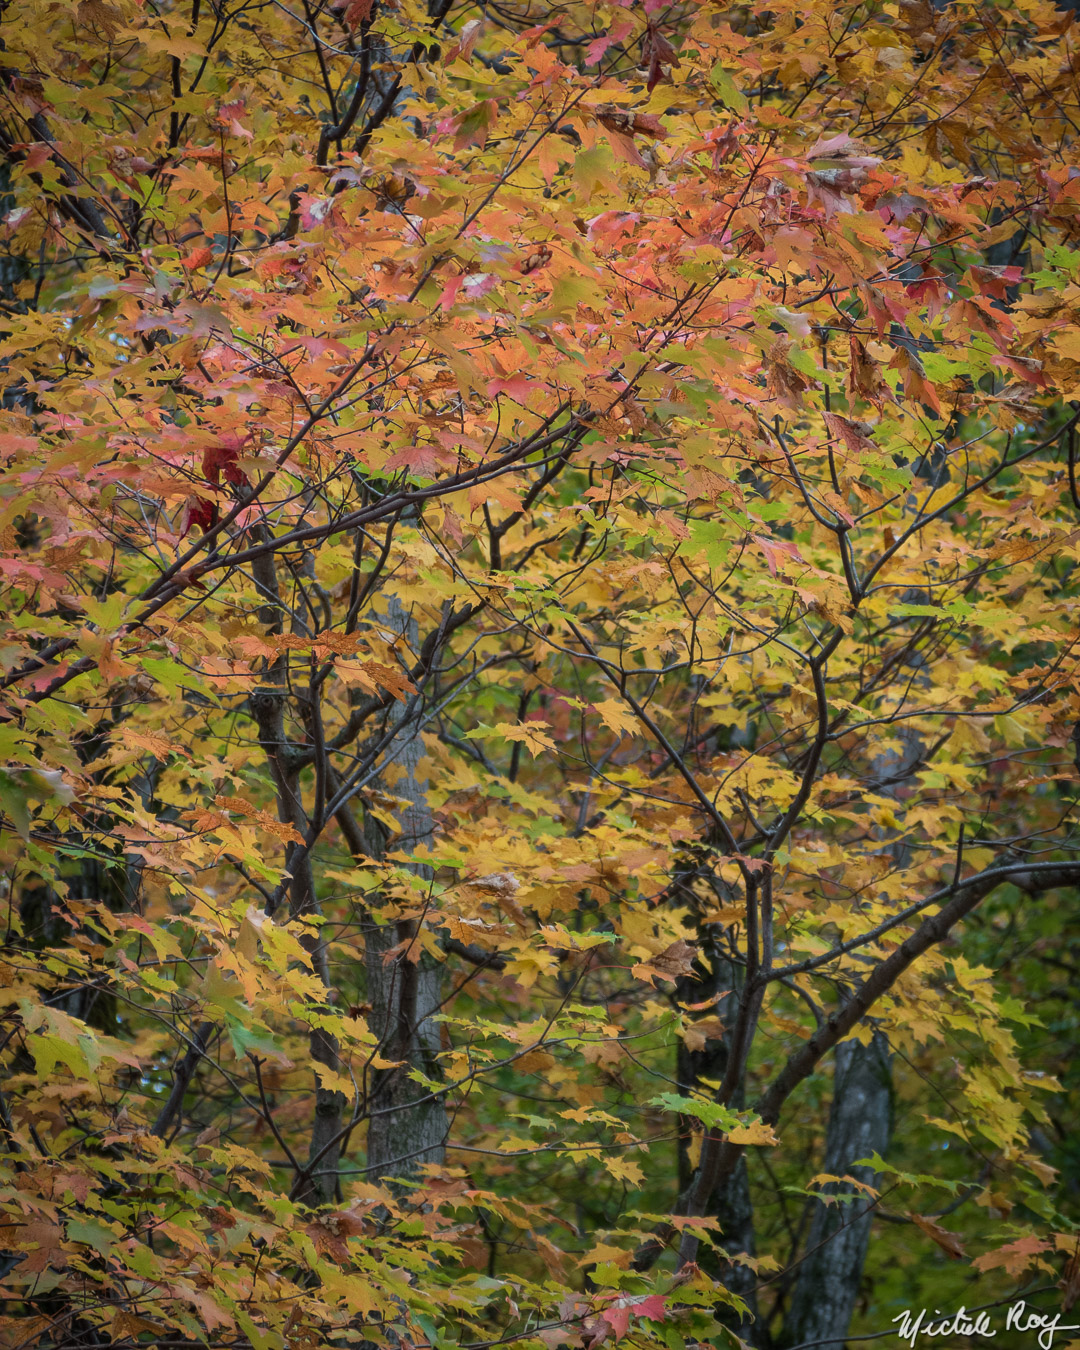 Couleurs automnales (5) / Fall colors (5)